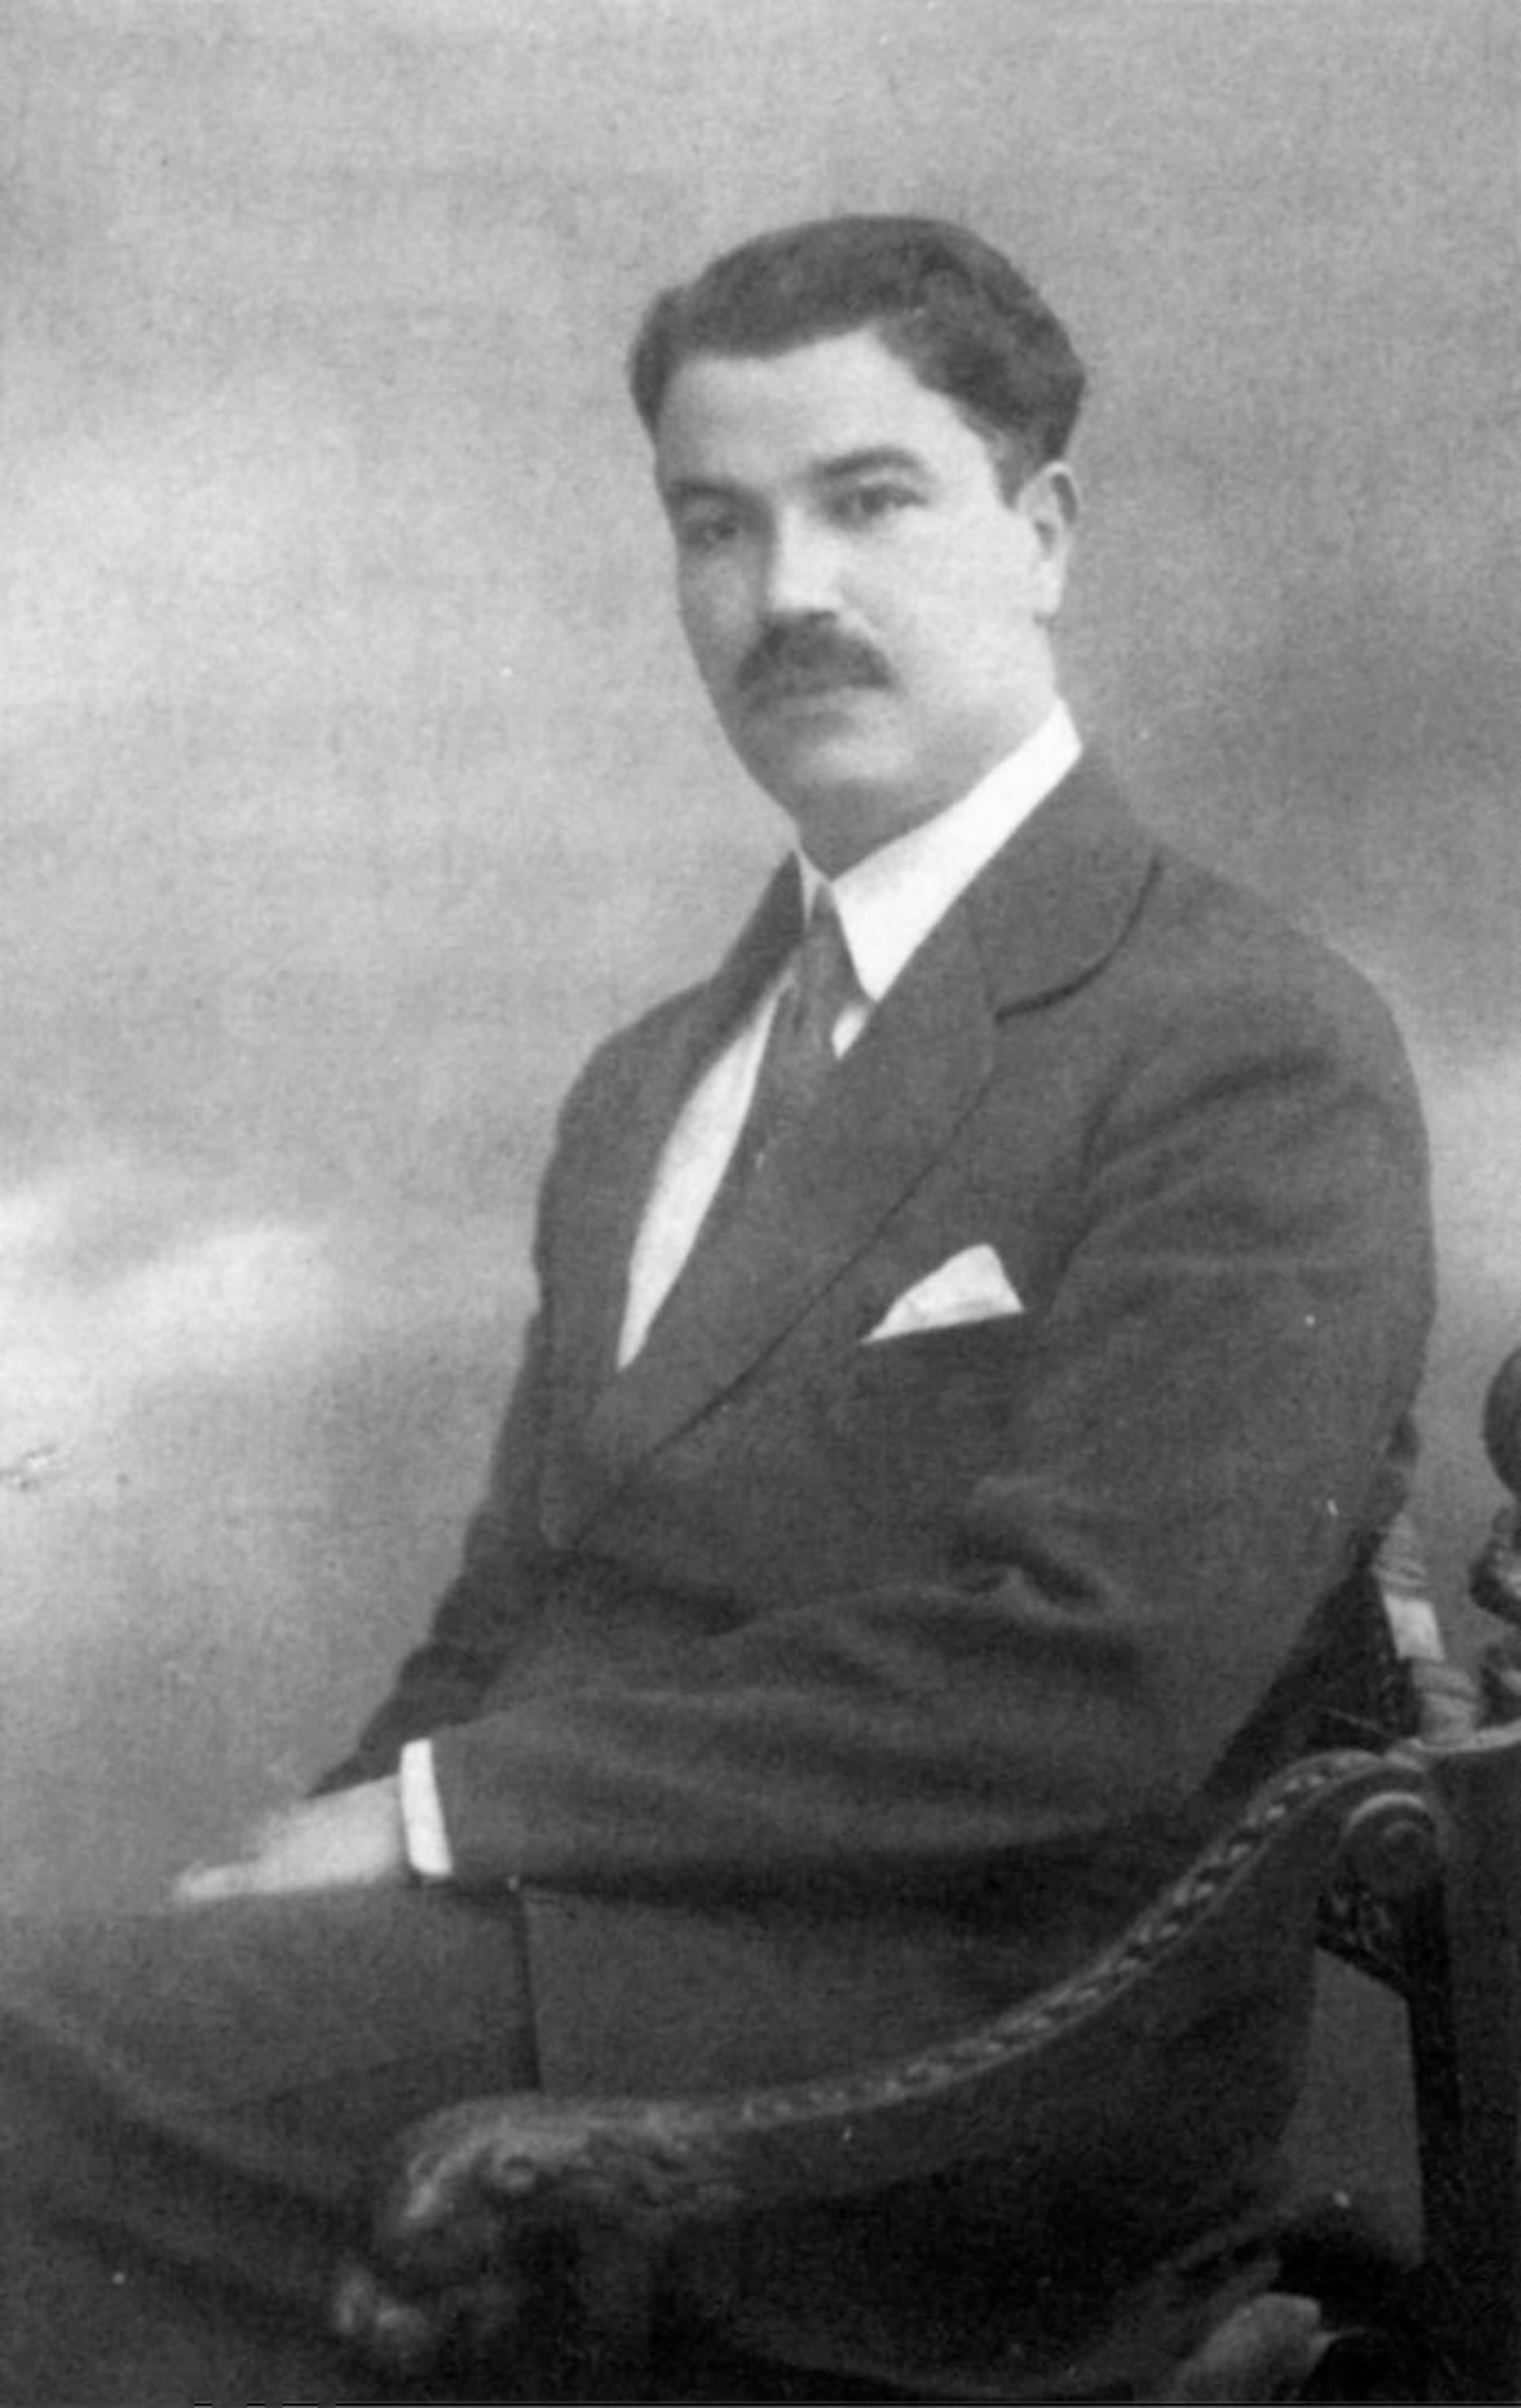 The architect Spyro G. Houris, born in Alexandria.He came to Jerusalem just before World War I.